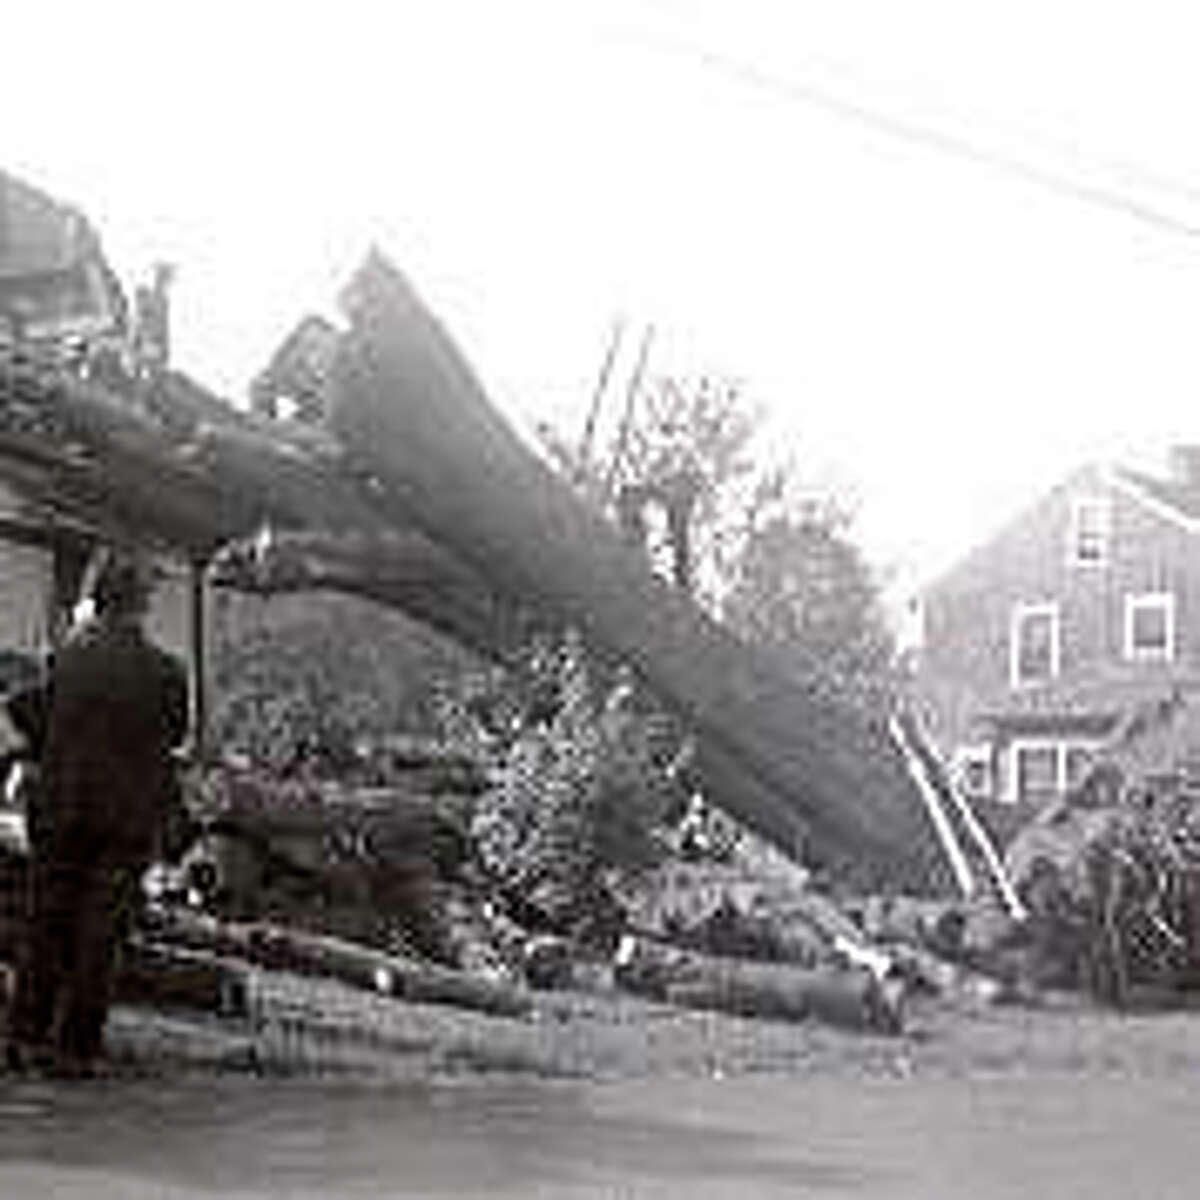 Fairfield residents work together to remove a tree that crashed onto a house during the Hurricane of 1938. Courtesy: Fairfield Museum and History Center.